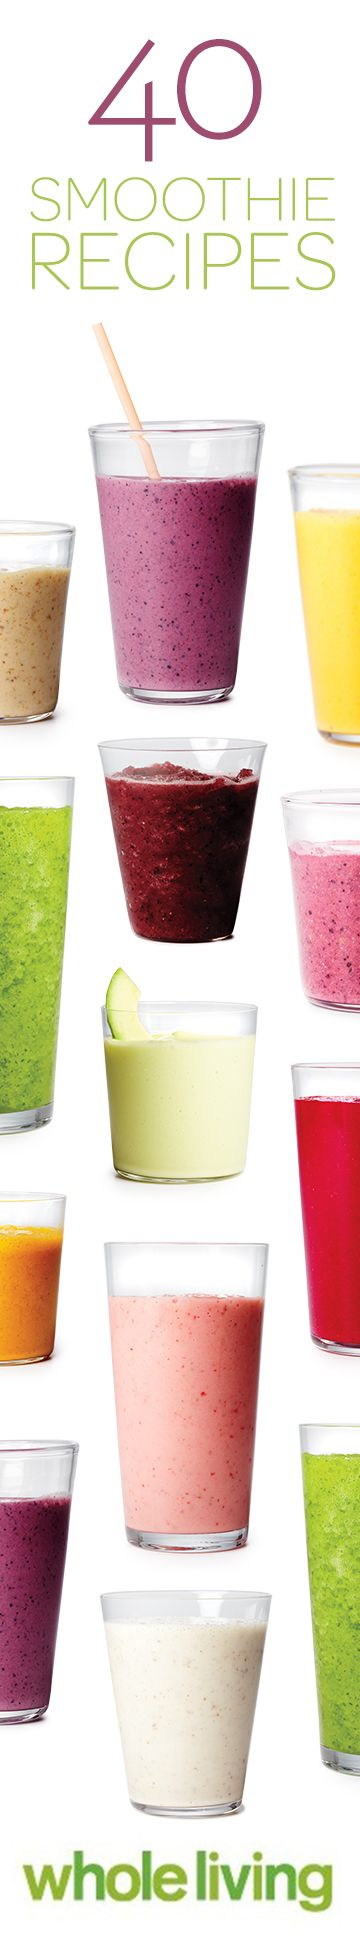 40 Healthy Fruit and Vegetable Smoothies.